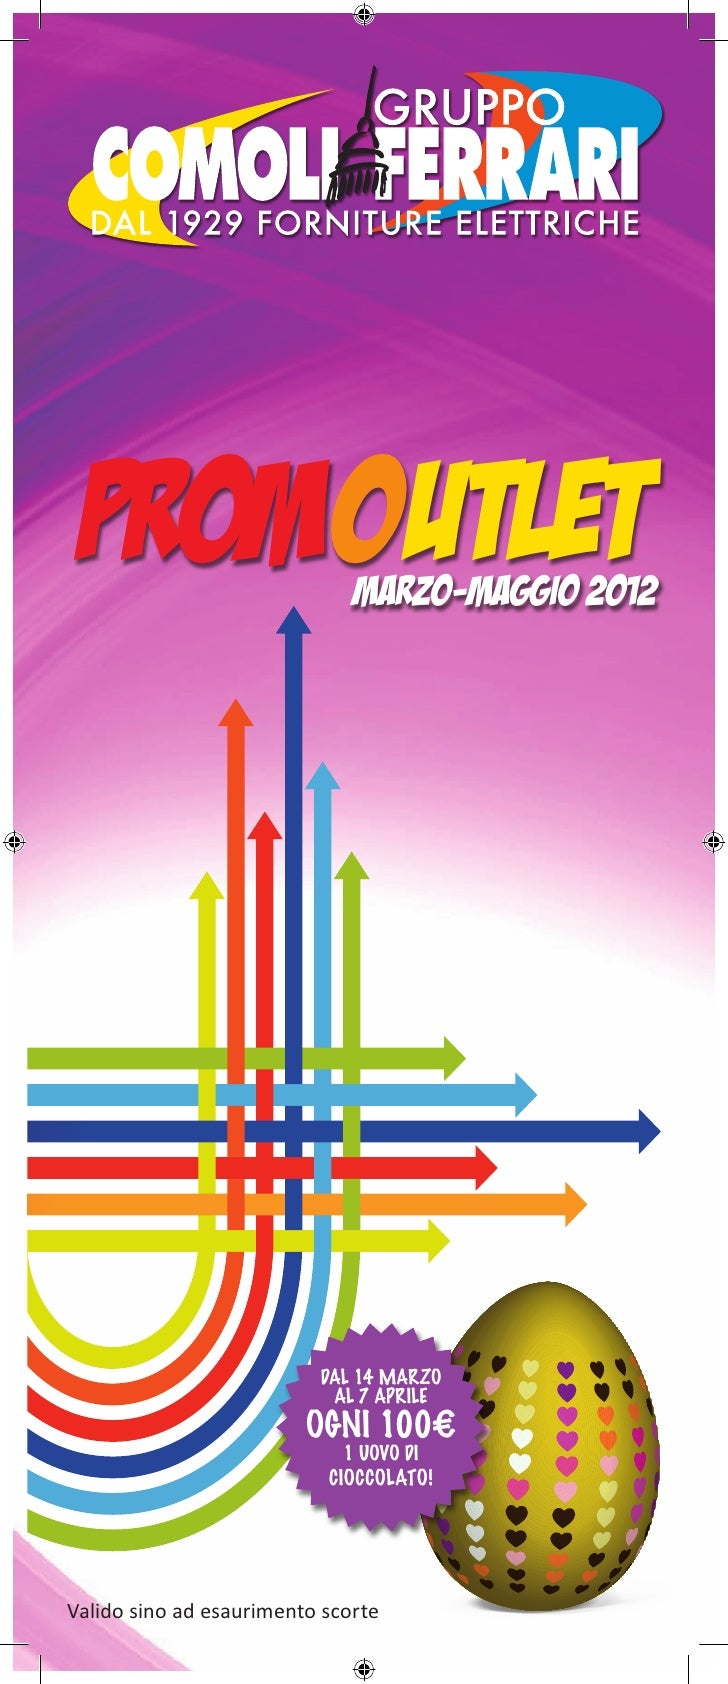 Promo outlet rit